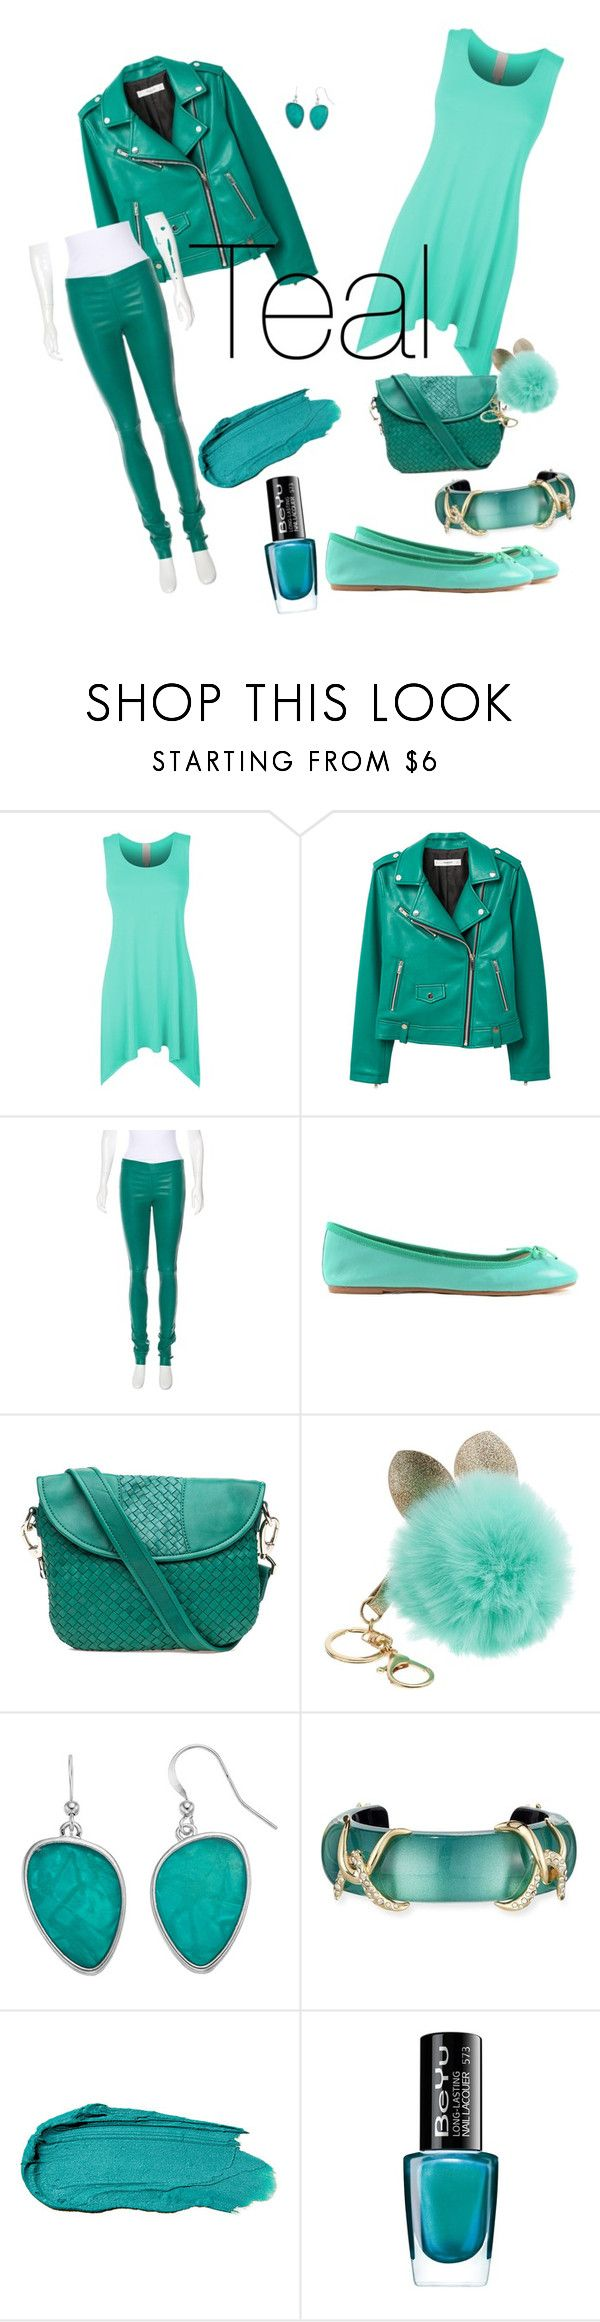 """""""Teal Everything"""" by mirandaellis1504 ❤ liked on Polyvore featuring LE3NO, MANGO, Joseph, ANNA BAIGUERA, Robert Zur, Alexis Bittar and BeYu"""